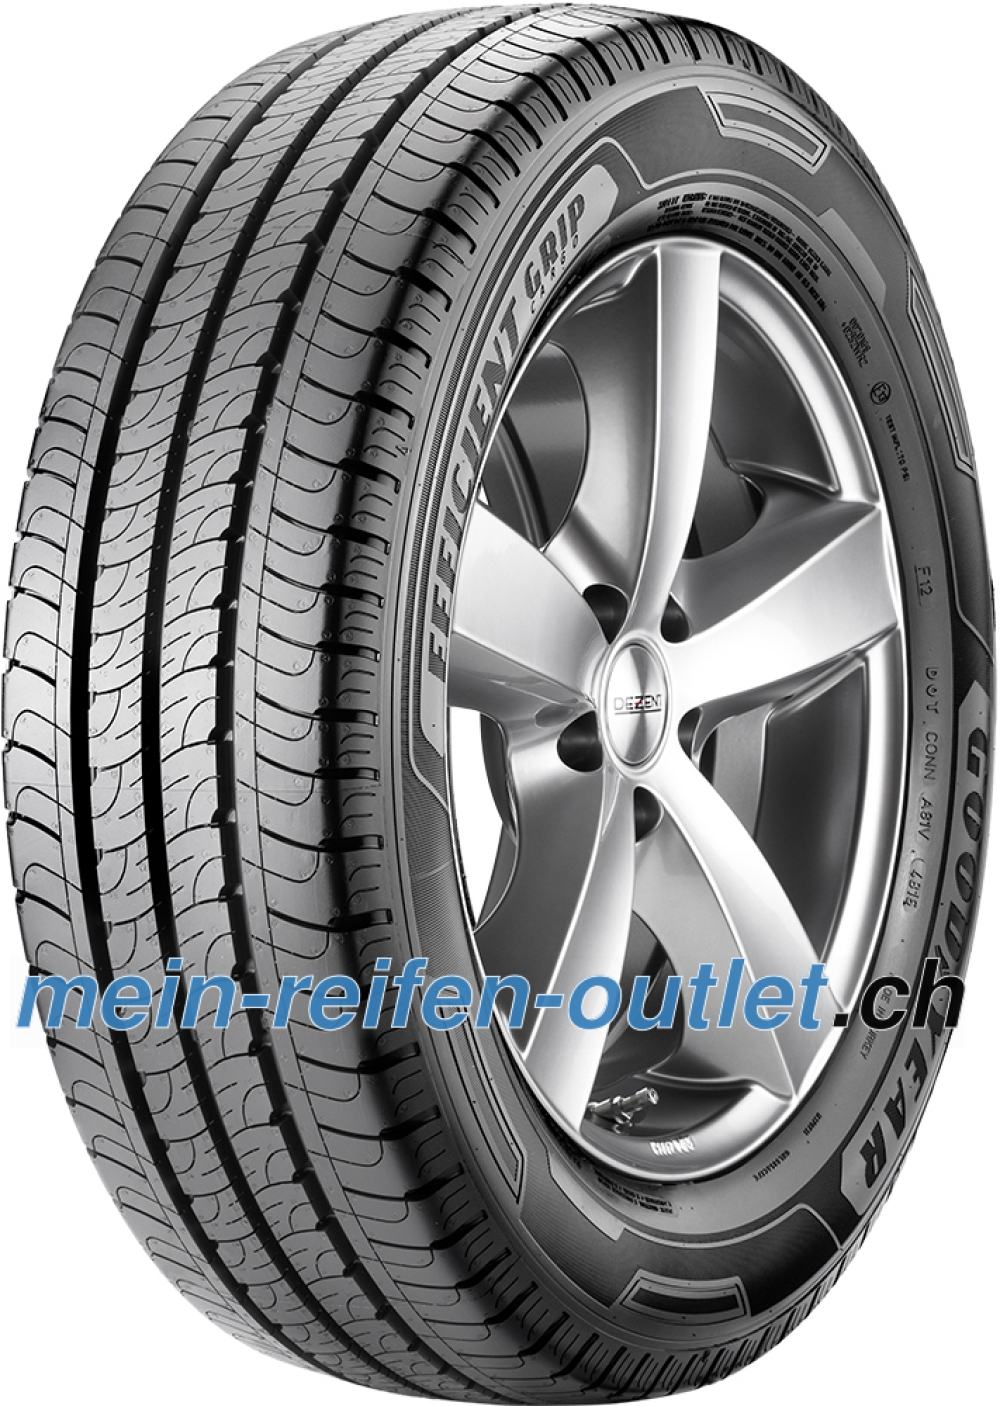 Goodyear EfficientGrip Cargo ( 215/70 R15C 109/107S 8PR )